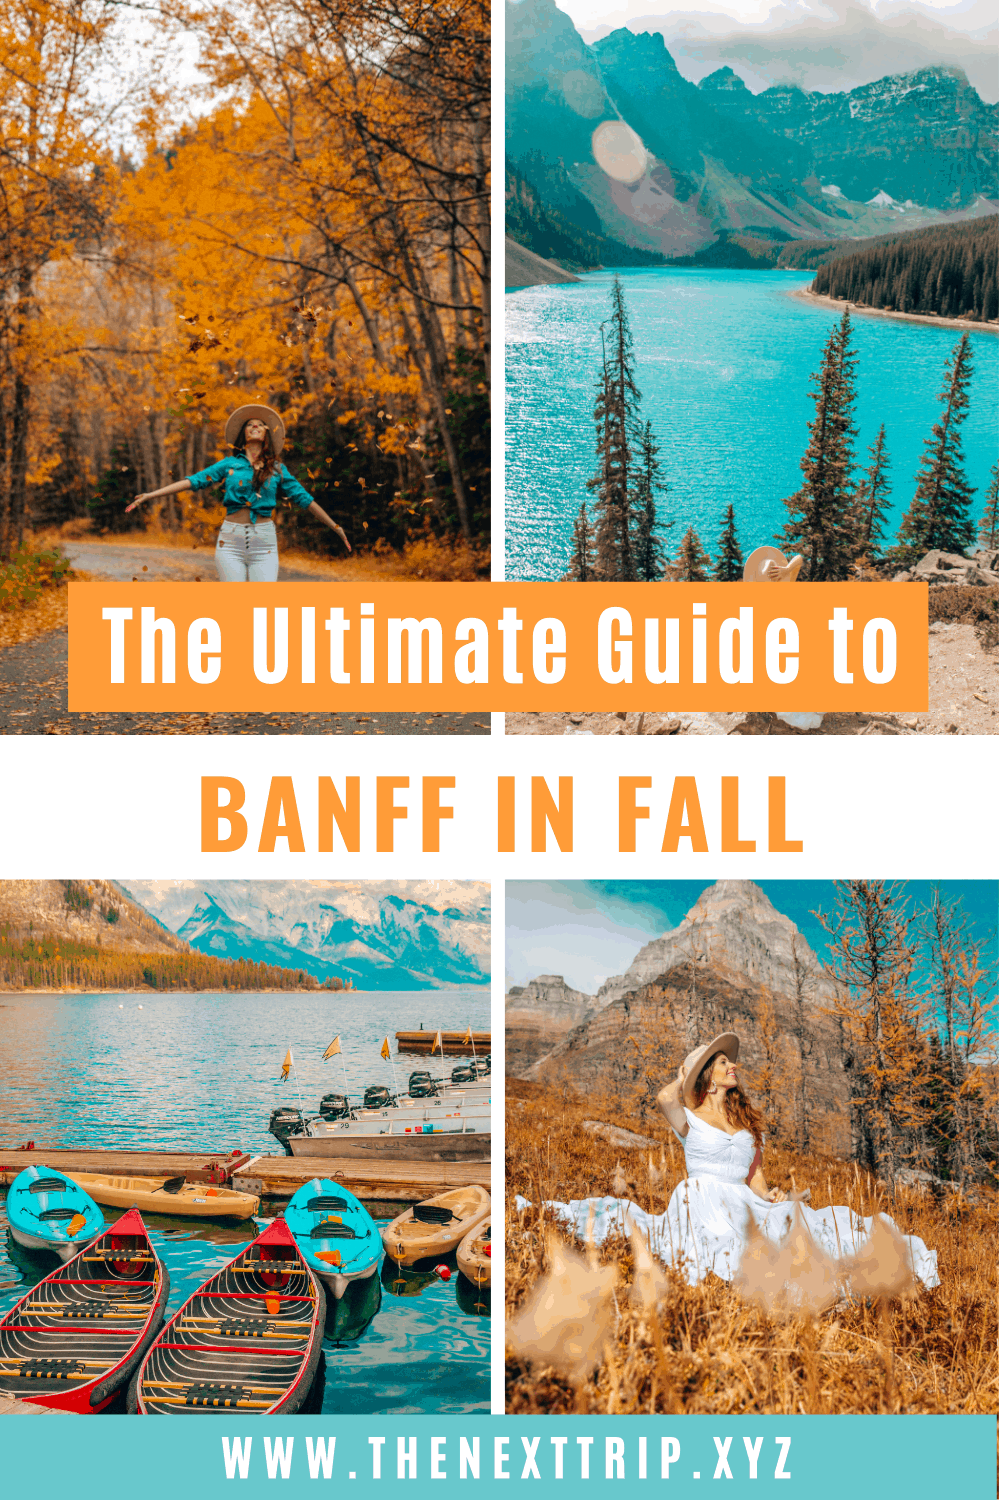 The ultimate guide to Banff in Fall to plan the perfect Banff itinerary. These are the best places to see the fall foliage, the most scenic lake and when to visit, the best hikes in Banff National Park, and what to see around Banff. | Banff National Park | Banff Photography Guide | Moraine Lake | Lake Louise | Banff in Fall | Fall Outfit | Banff Instagrammable Places | Banff Outfit Fall | Banff Itinerary | Banff Hikes